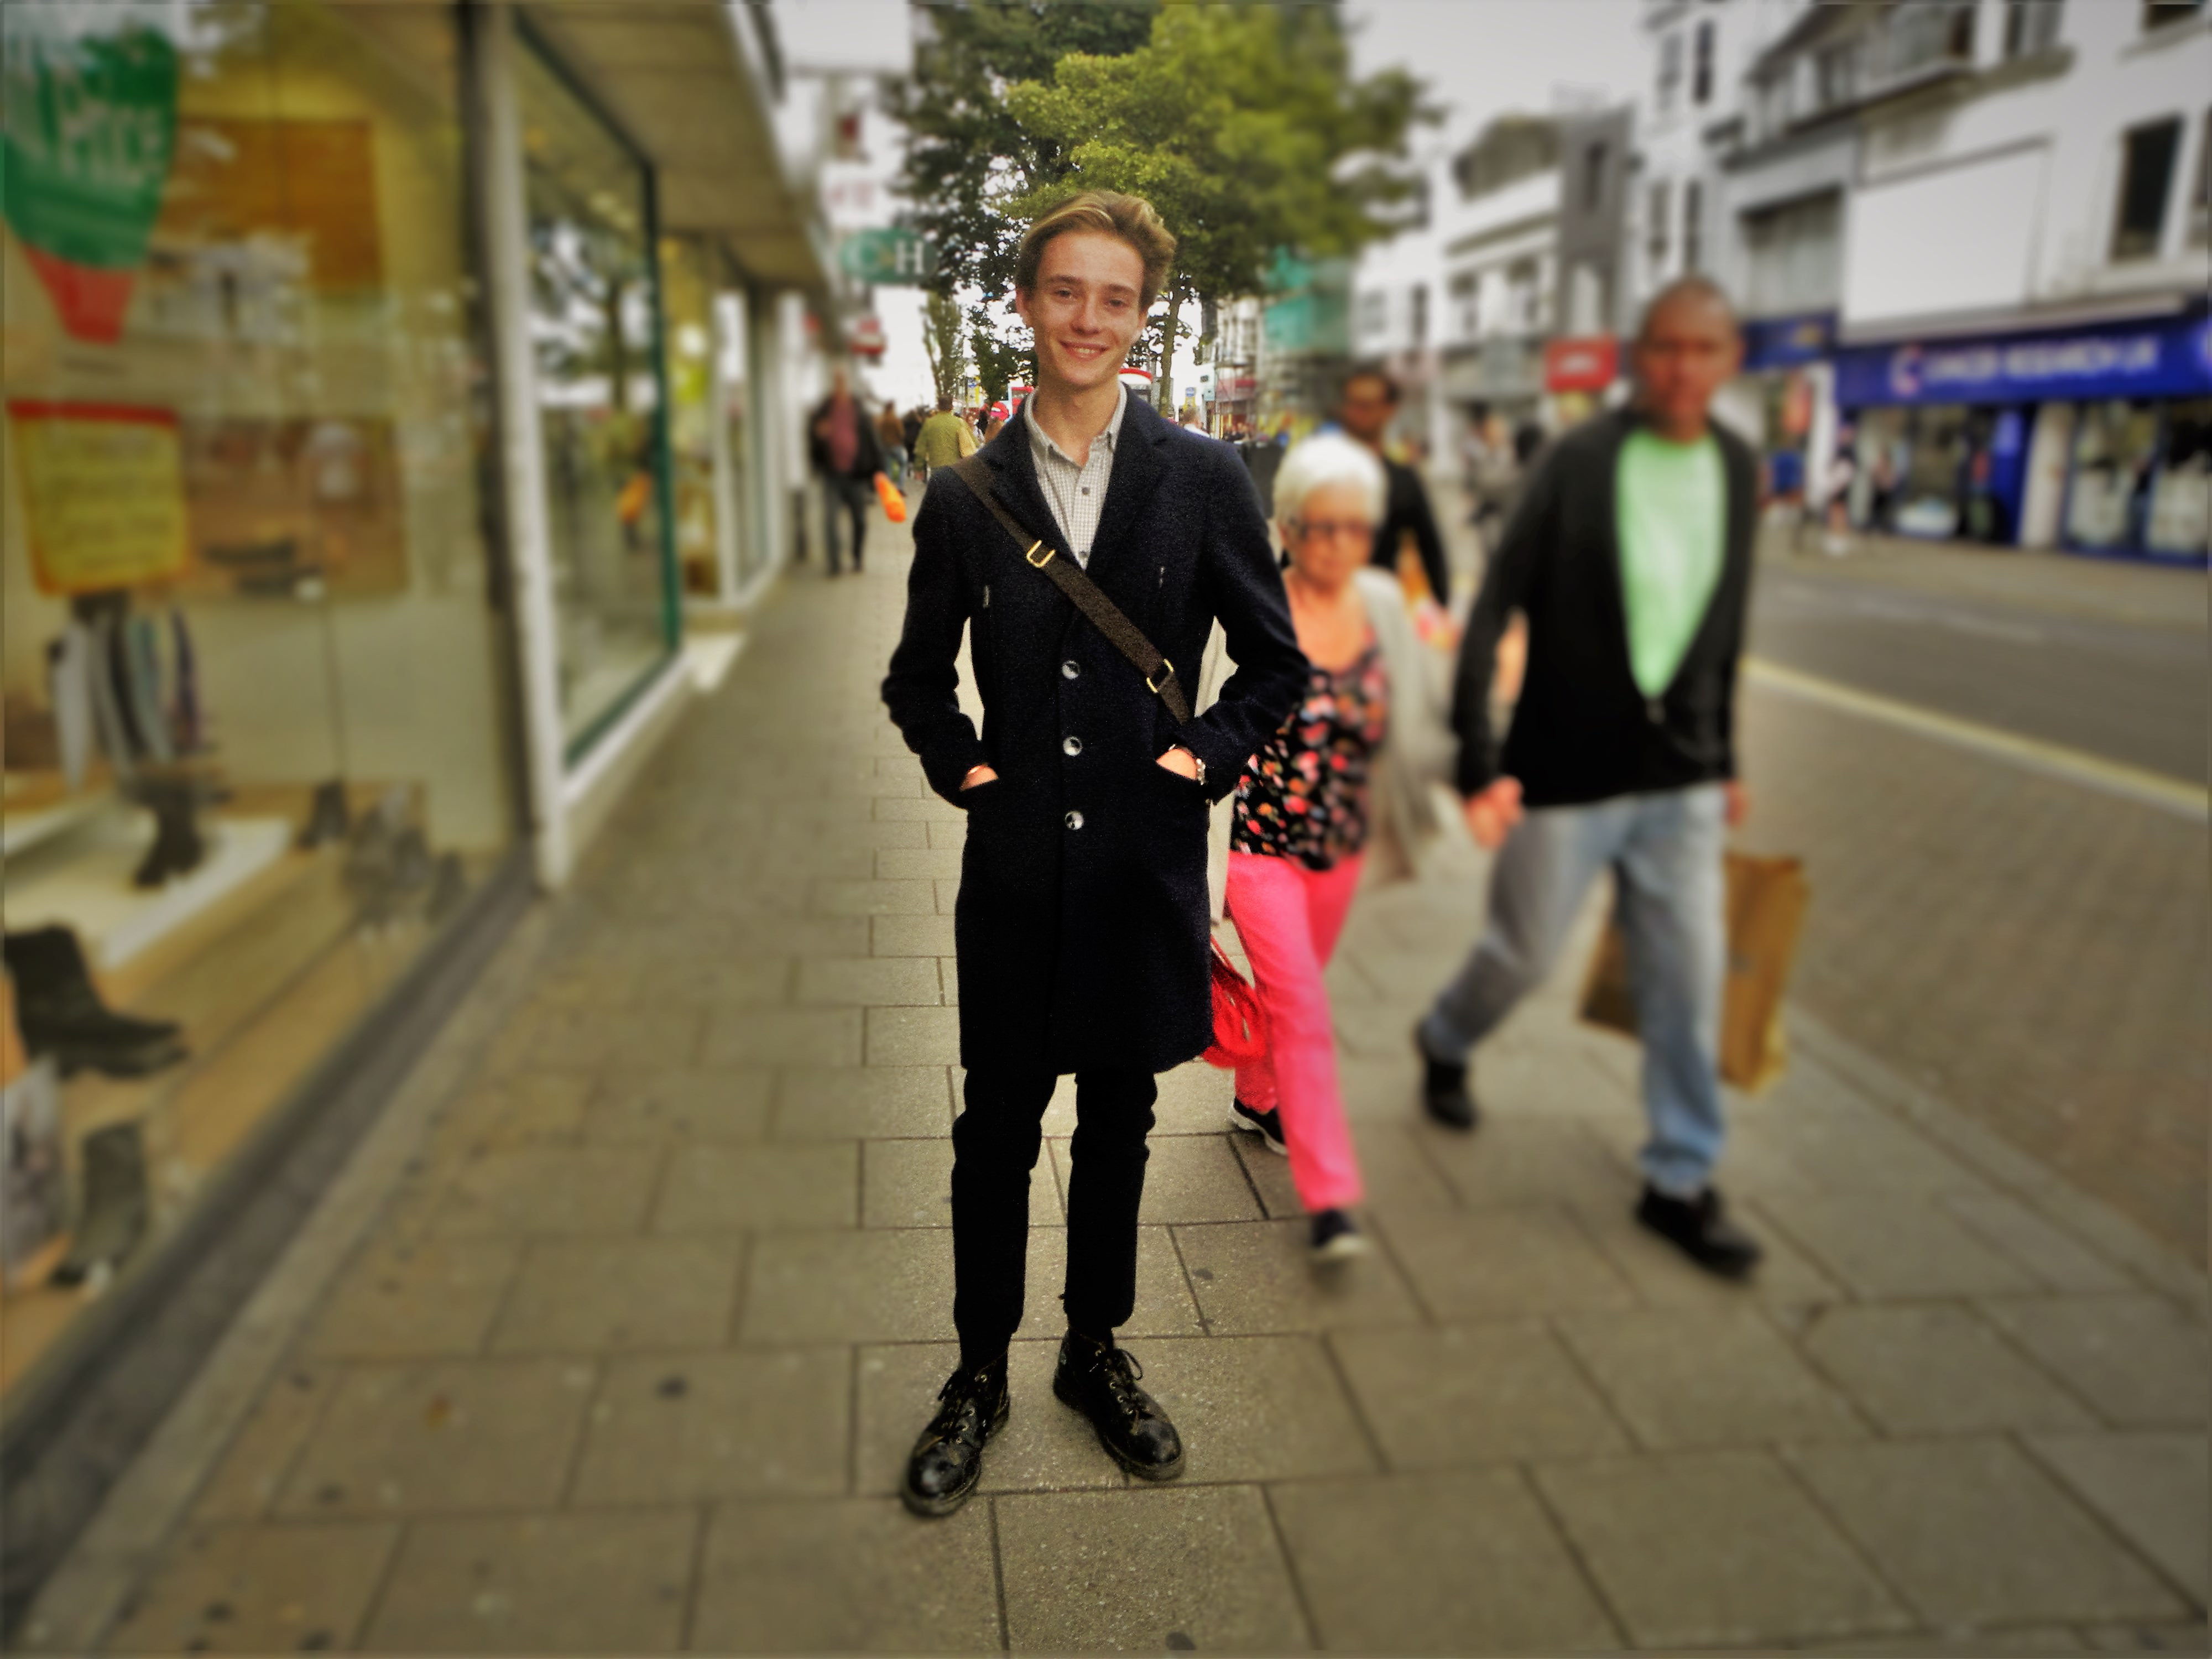 Jordan is wearing a jacket from Zara, trousers Top Man, shoes Doctor Marten and bag from Marshall Burgman.